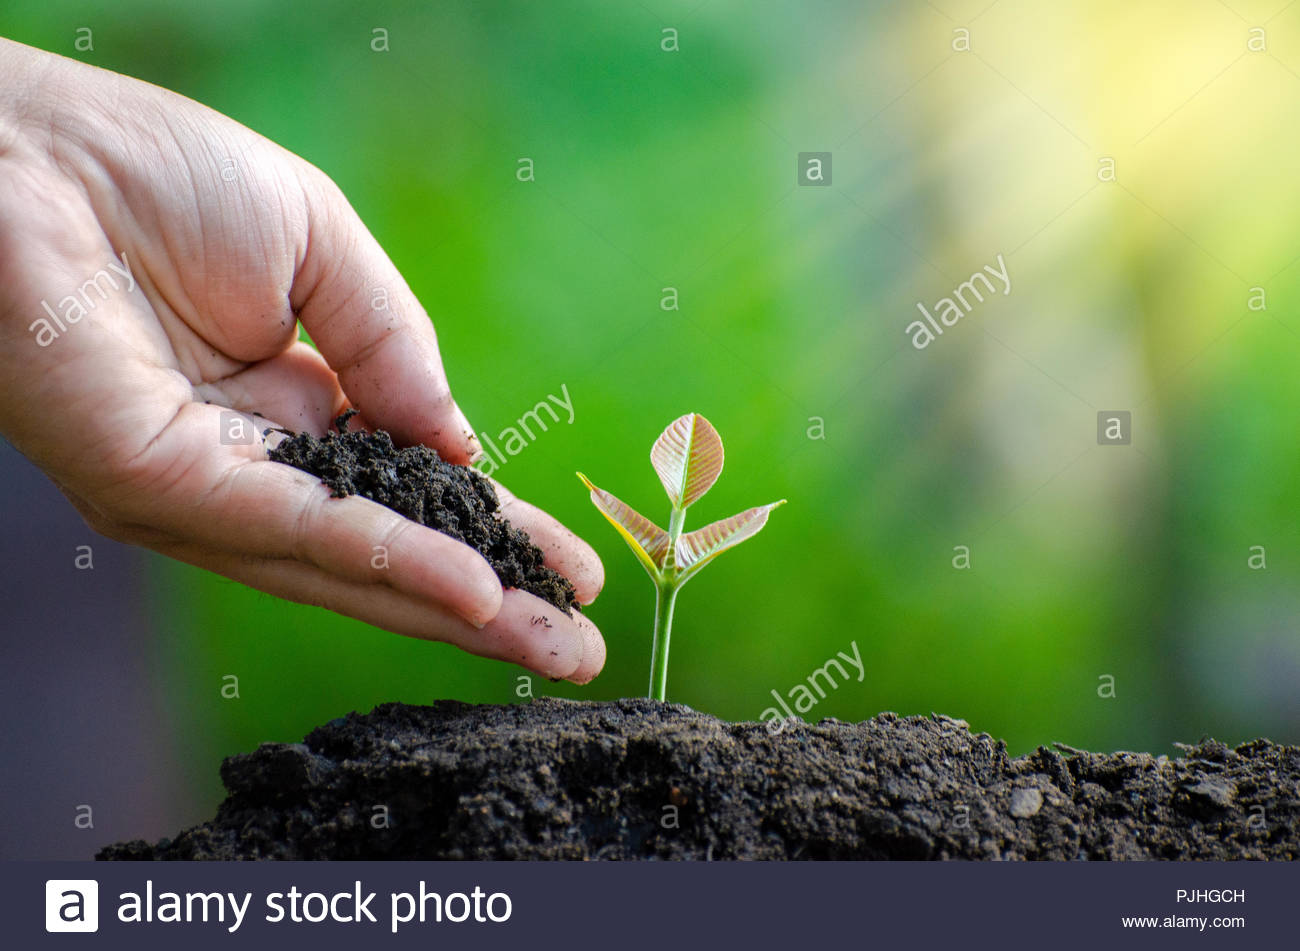 tree sapling hand planting sprout in soil with sunset close up 1300x951